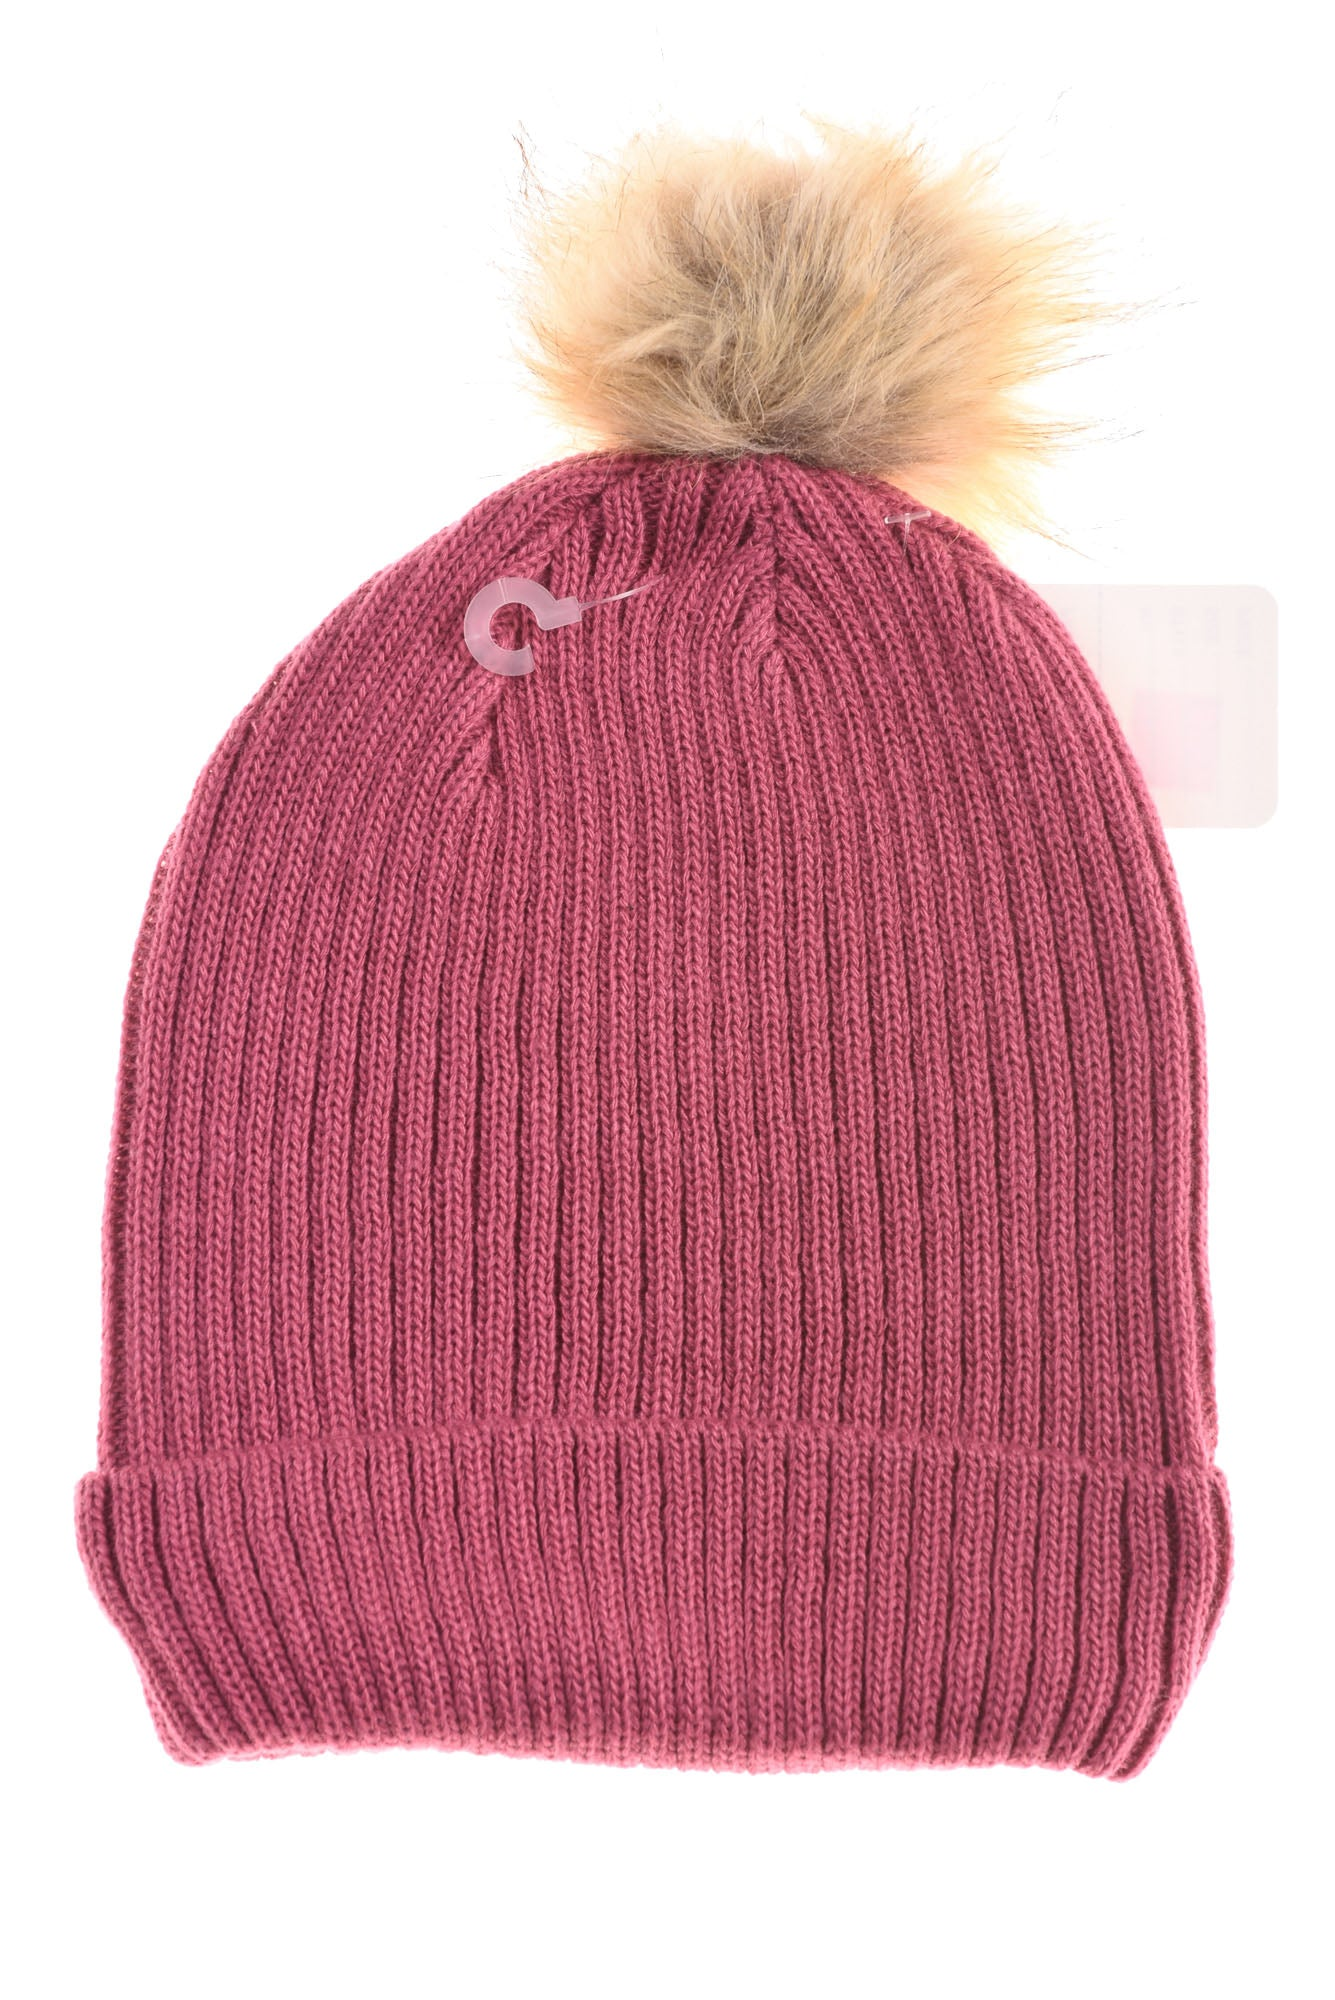 92694256efb NEW No Brand Women s Hat One Size Pink - Village Discount Outlet